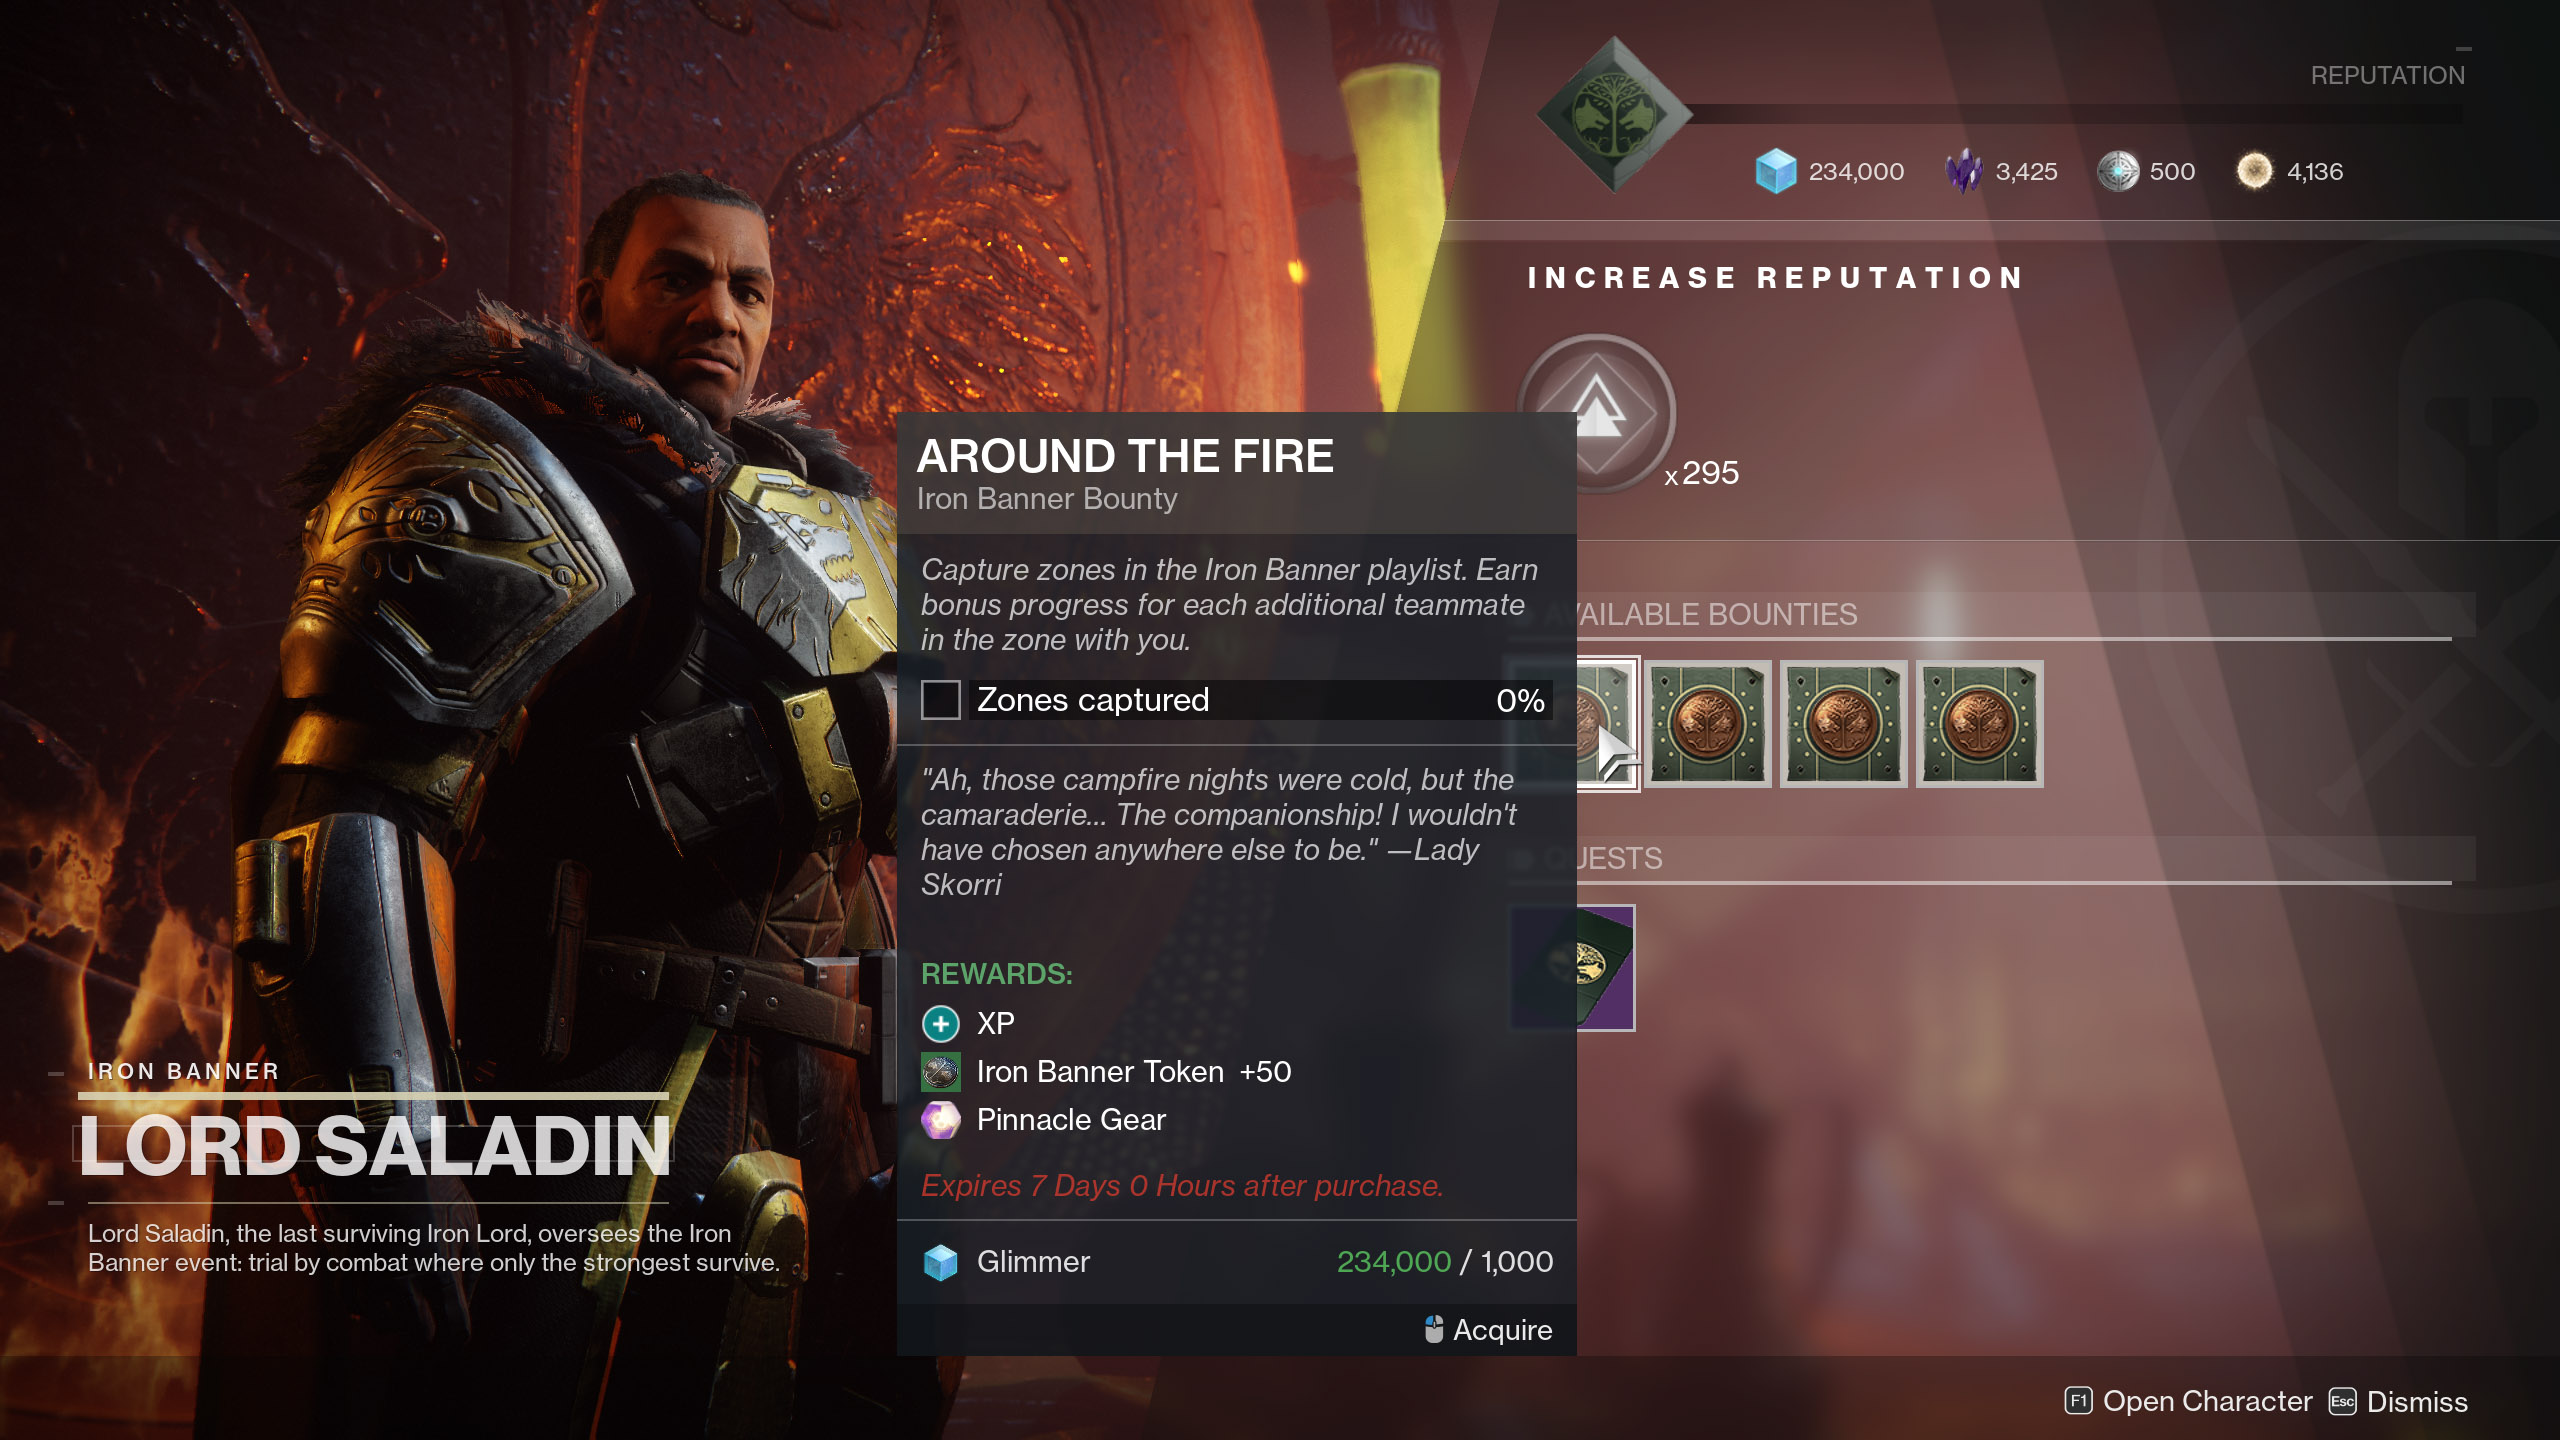 Around Fire Iron Banner Bounty